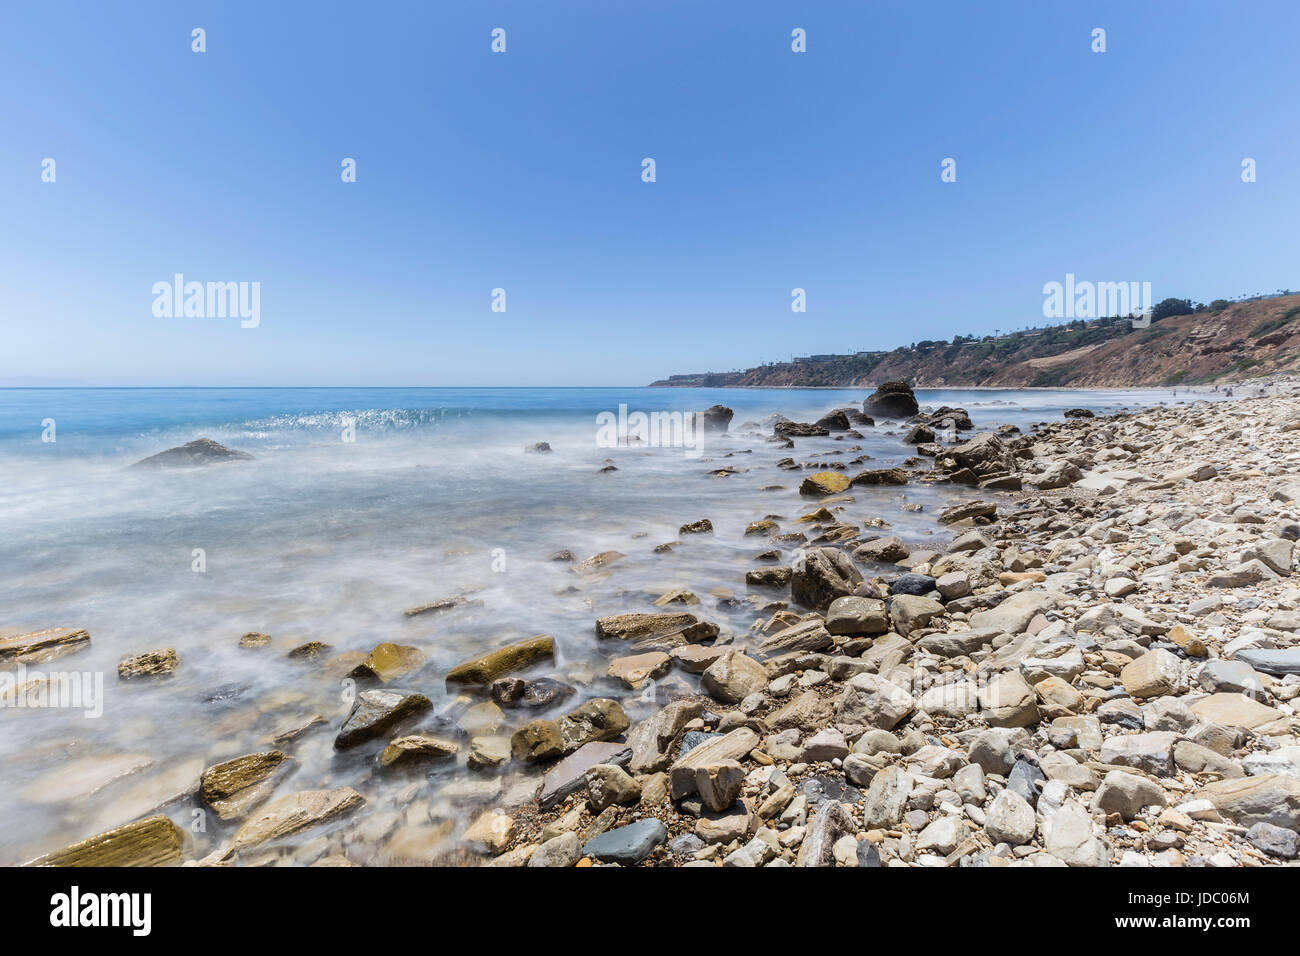 Ocean wave motion blur water at Abalone Cove Shoreline Park in Southern California. - Stock Image